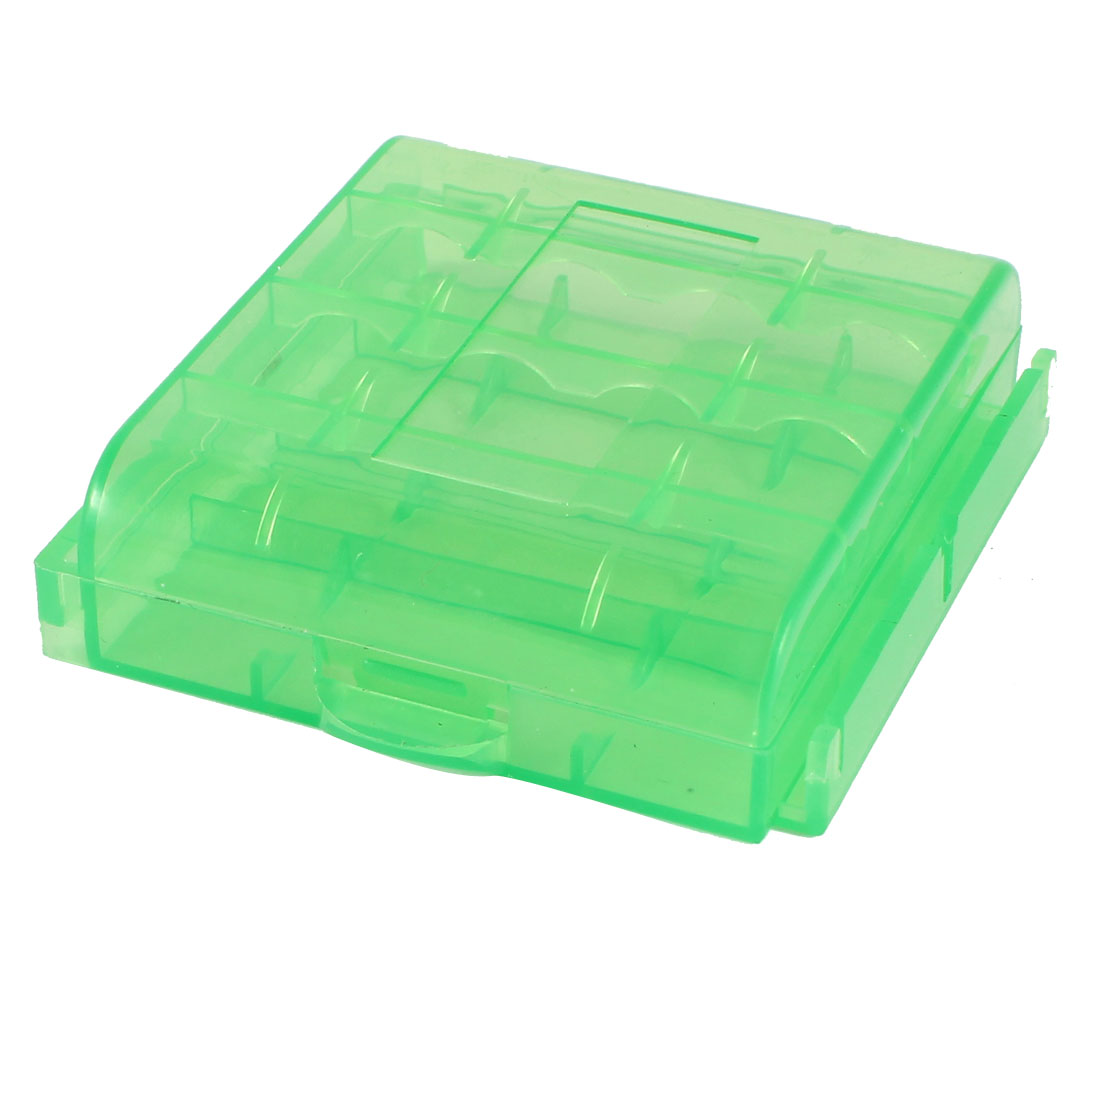 Plastic-Square-12-Compartments-Jewelry-Mini-Storage-Box-Case-Clear-Green